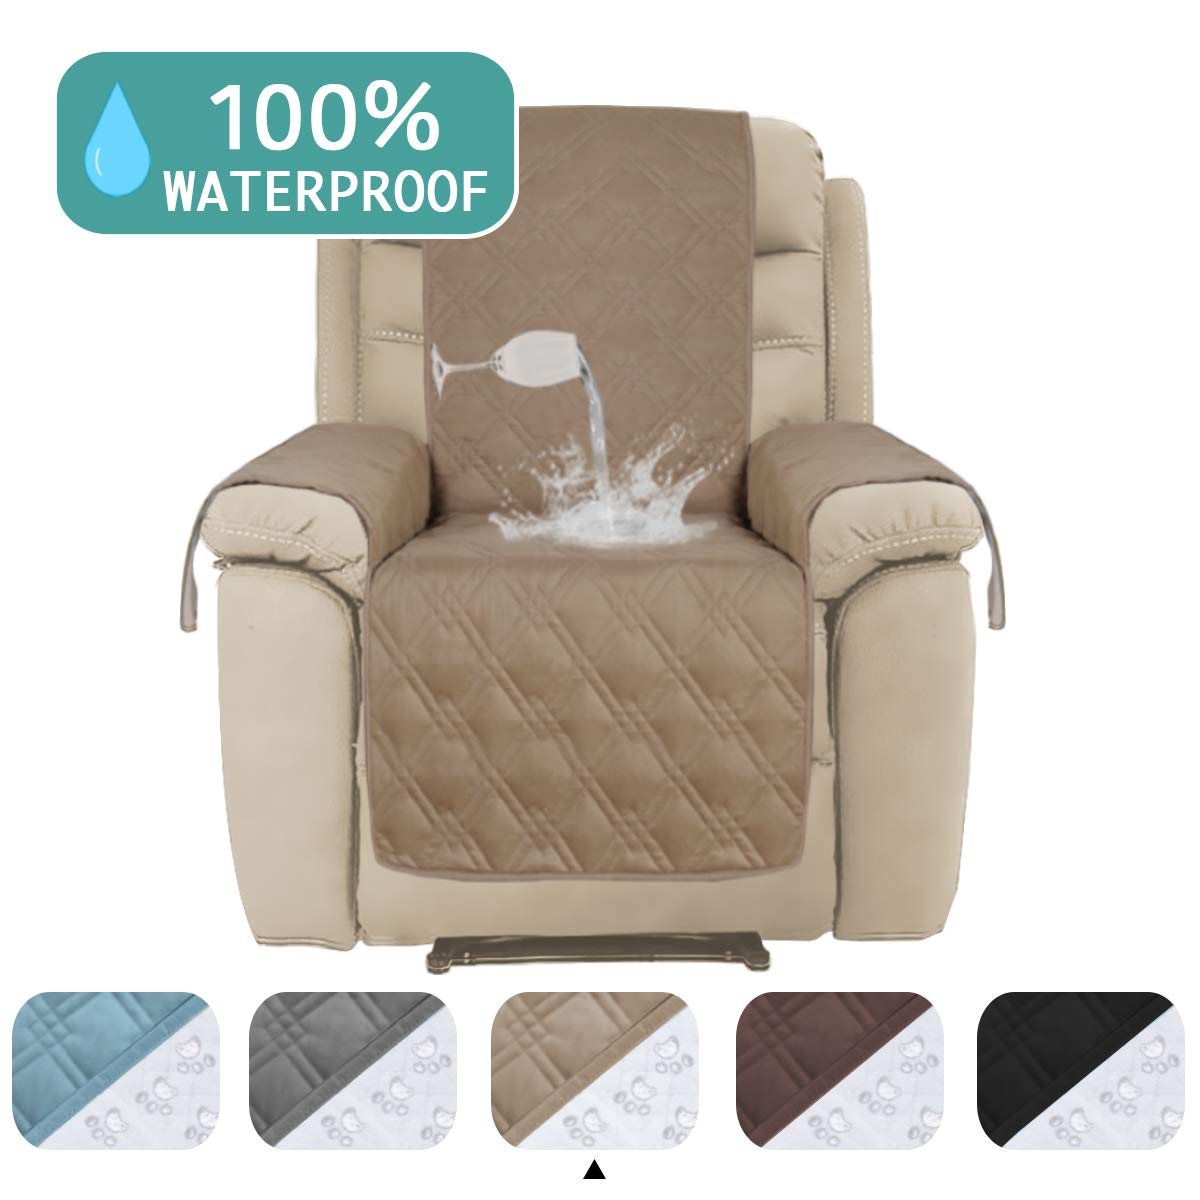 Turquoize Waterproof Sofa Covers for Large Recliner Chair Cover Quilted Furniture Cover Protector for Living Room Non-Slip Sofa Protector for Oversize Larger Recliner Taupe -91 x 84 - Inch by Turquoize